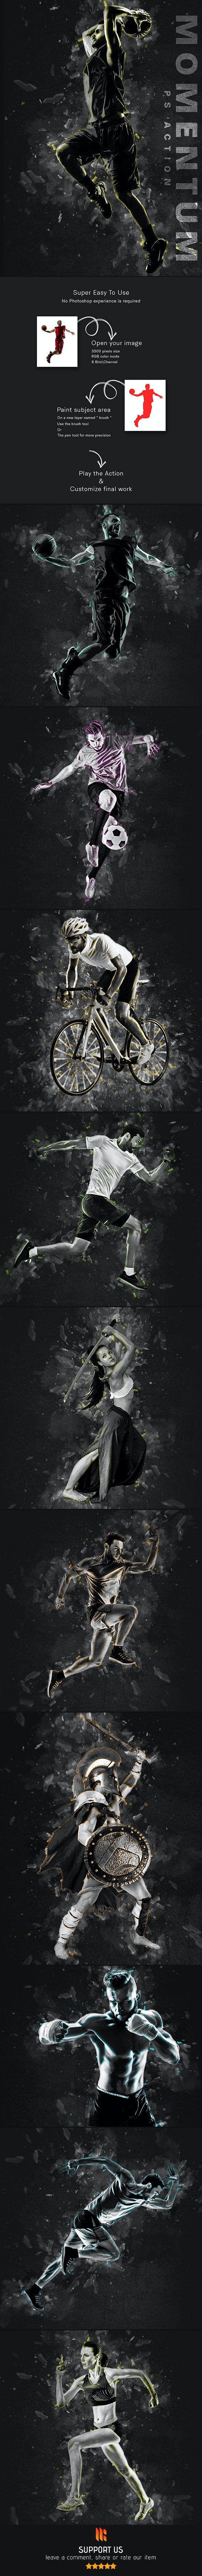 Momentum Photoshop Action - Photo Effects Actions